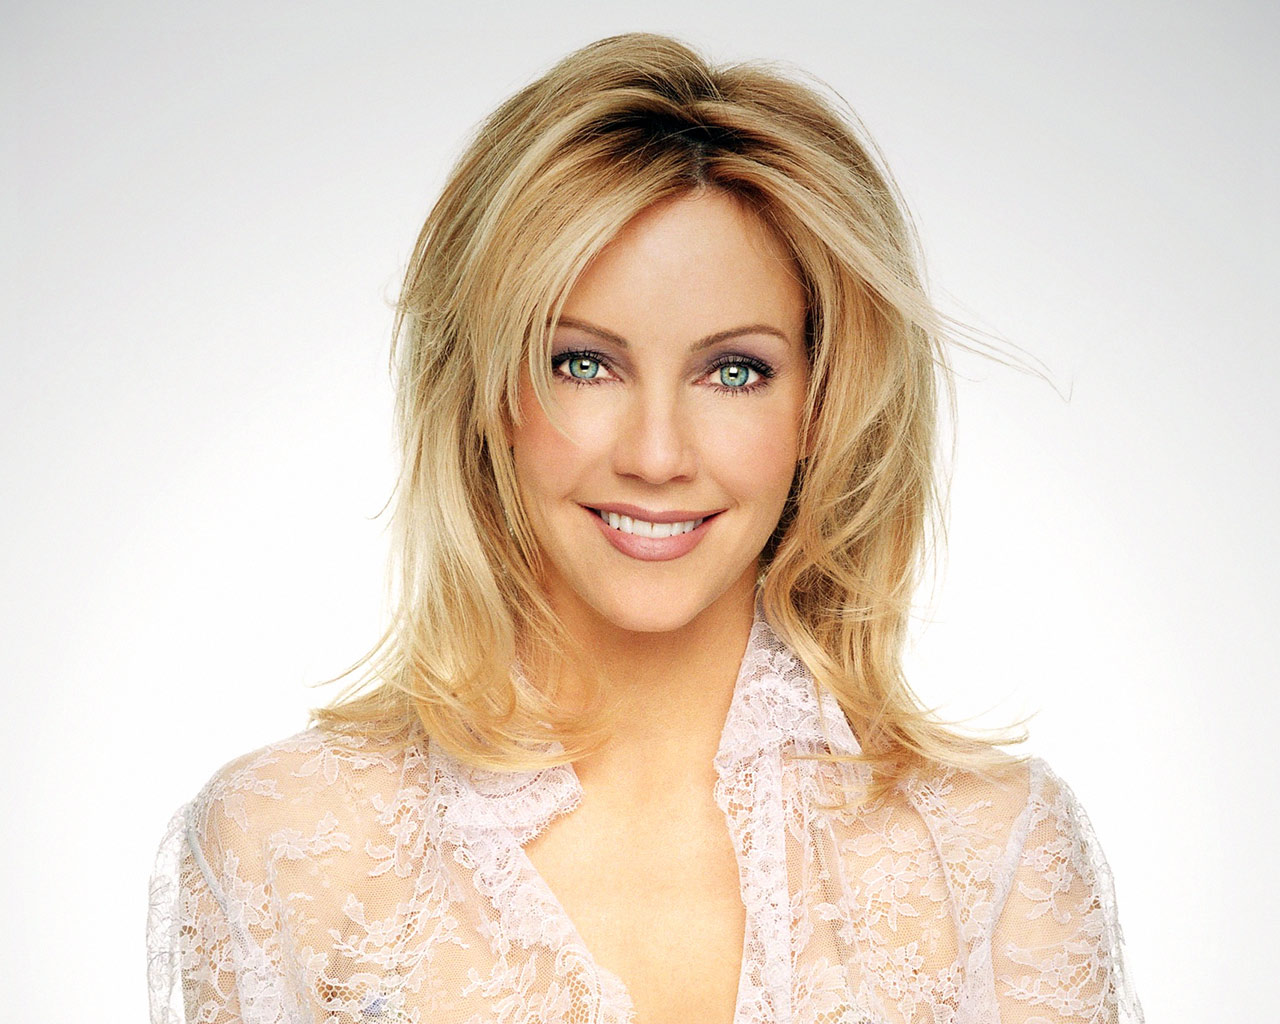 Heather Locklear Backgrounds, Compatible - PC, Mobile, Gadgets| 1280x1024 px